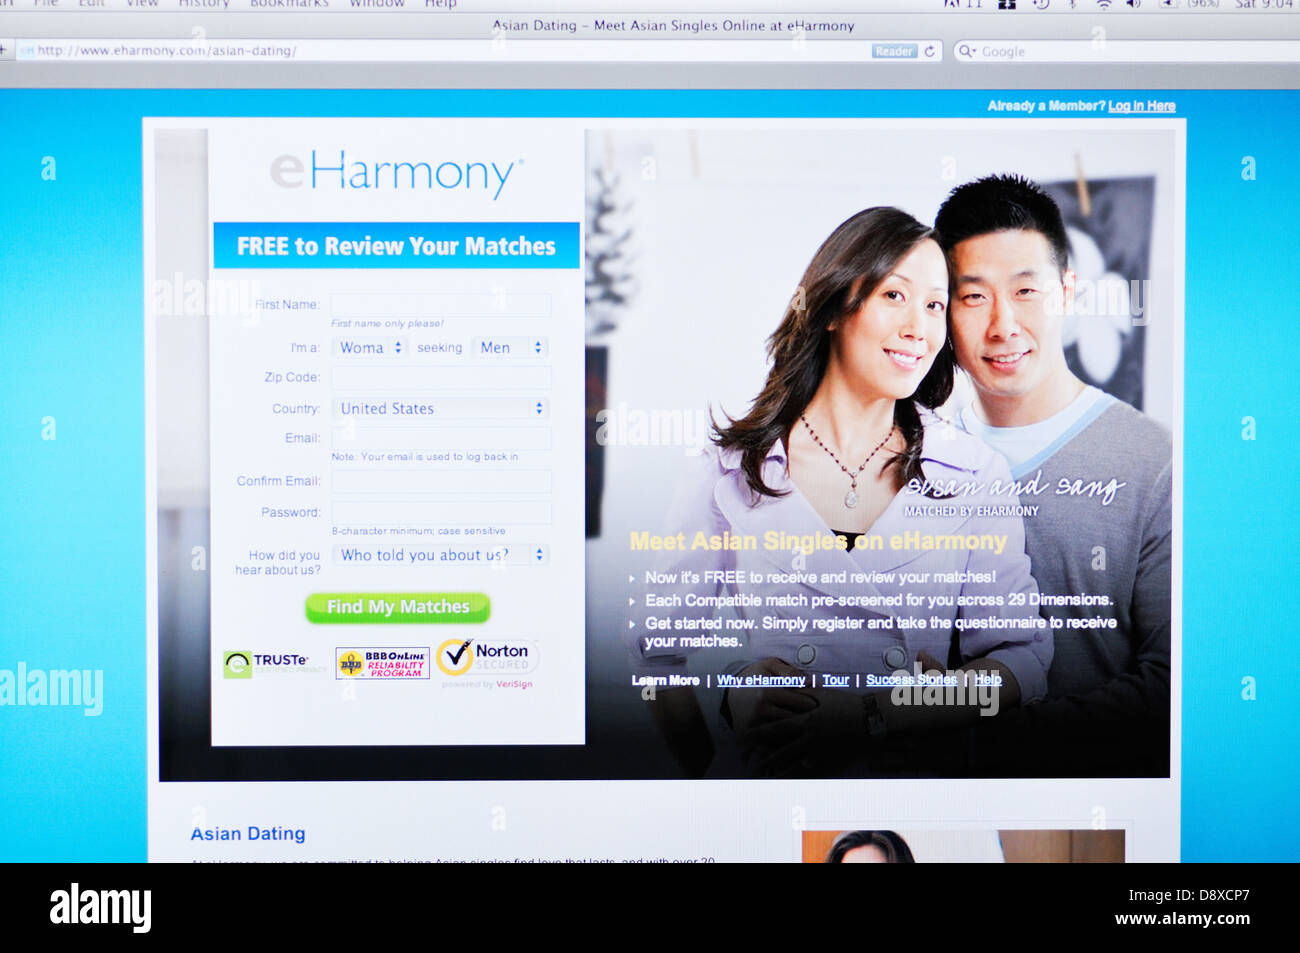 harmony dating website